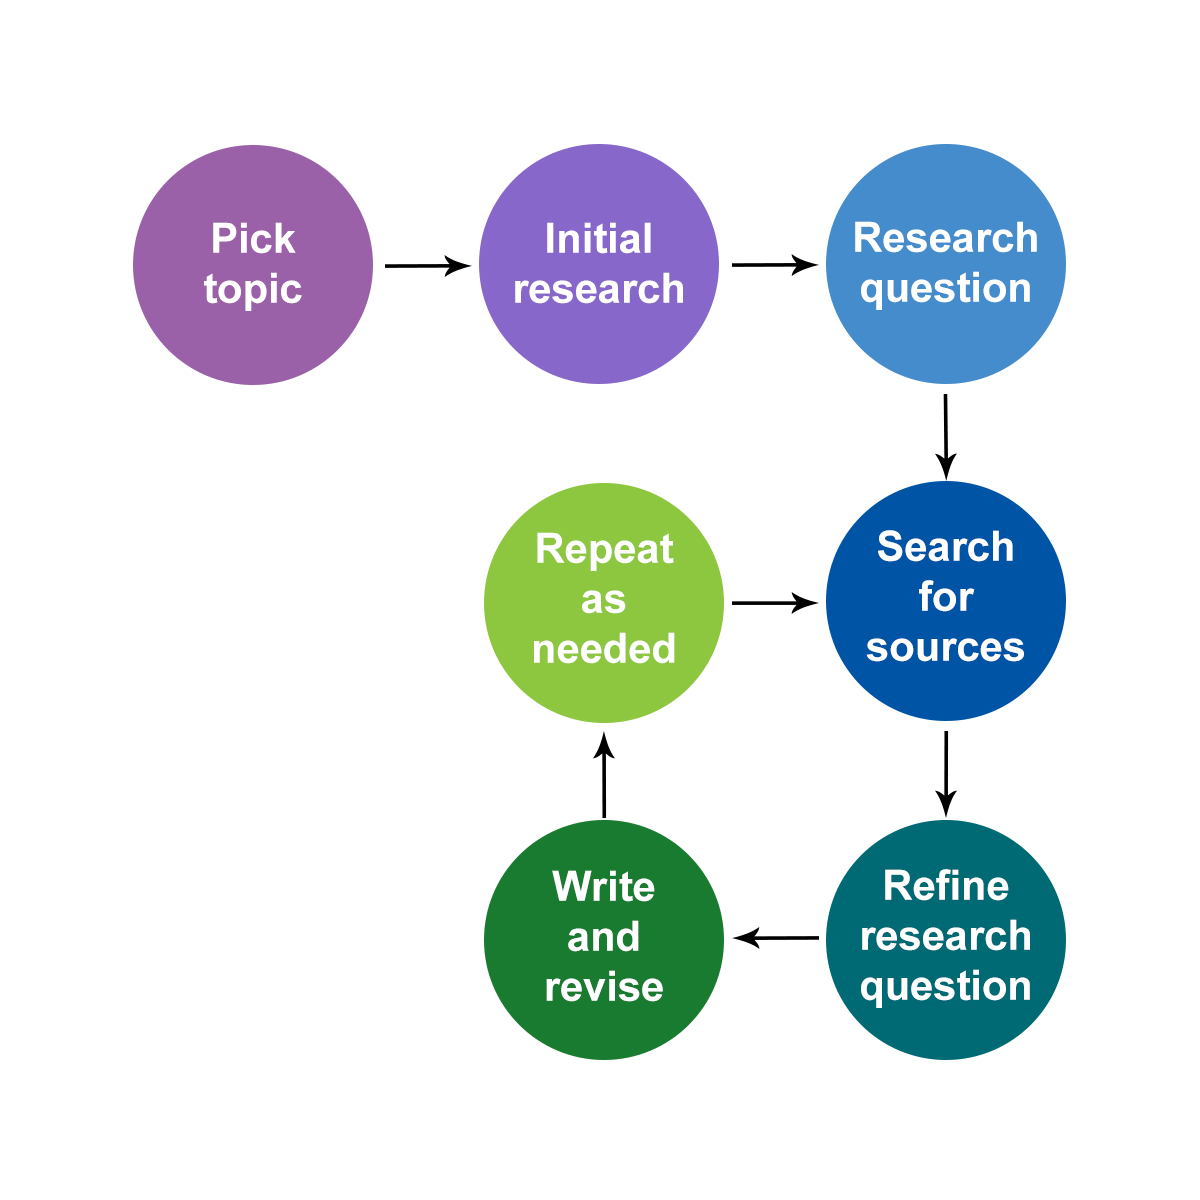 """Flow chart that follows through the research process steps of """"pick topic,"""" """"initial research,"""" """"research question,"""" """"search for sources,"""" """"refine research question,"""" """"write and revise,"""" and """"repeat as needed"""""""